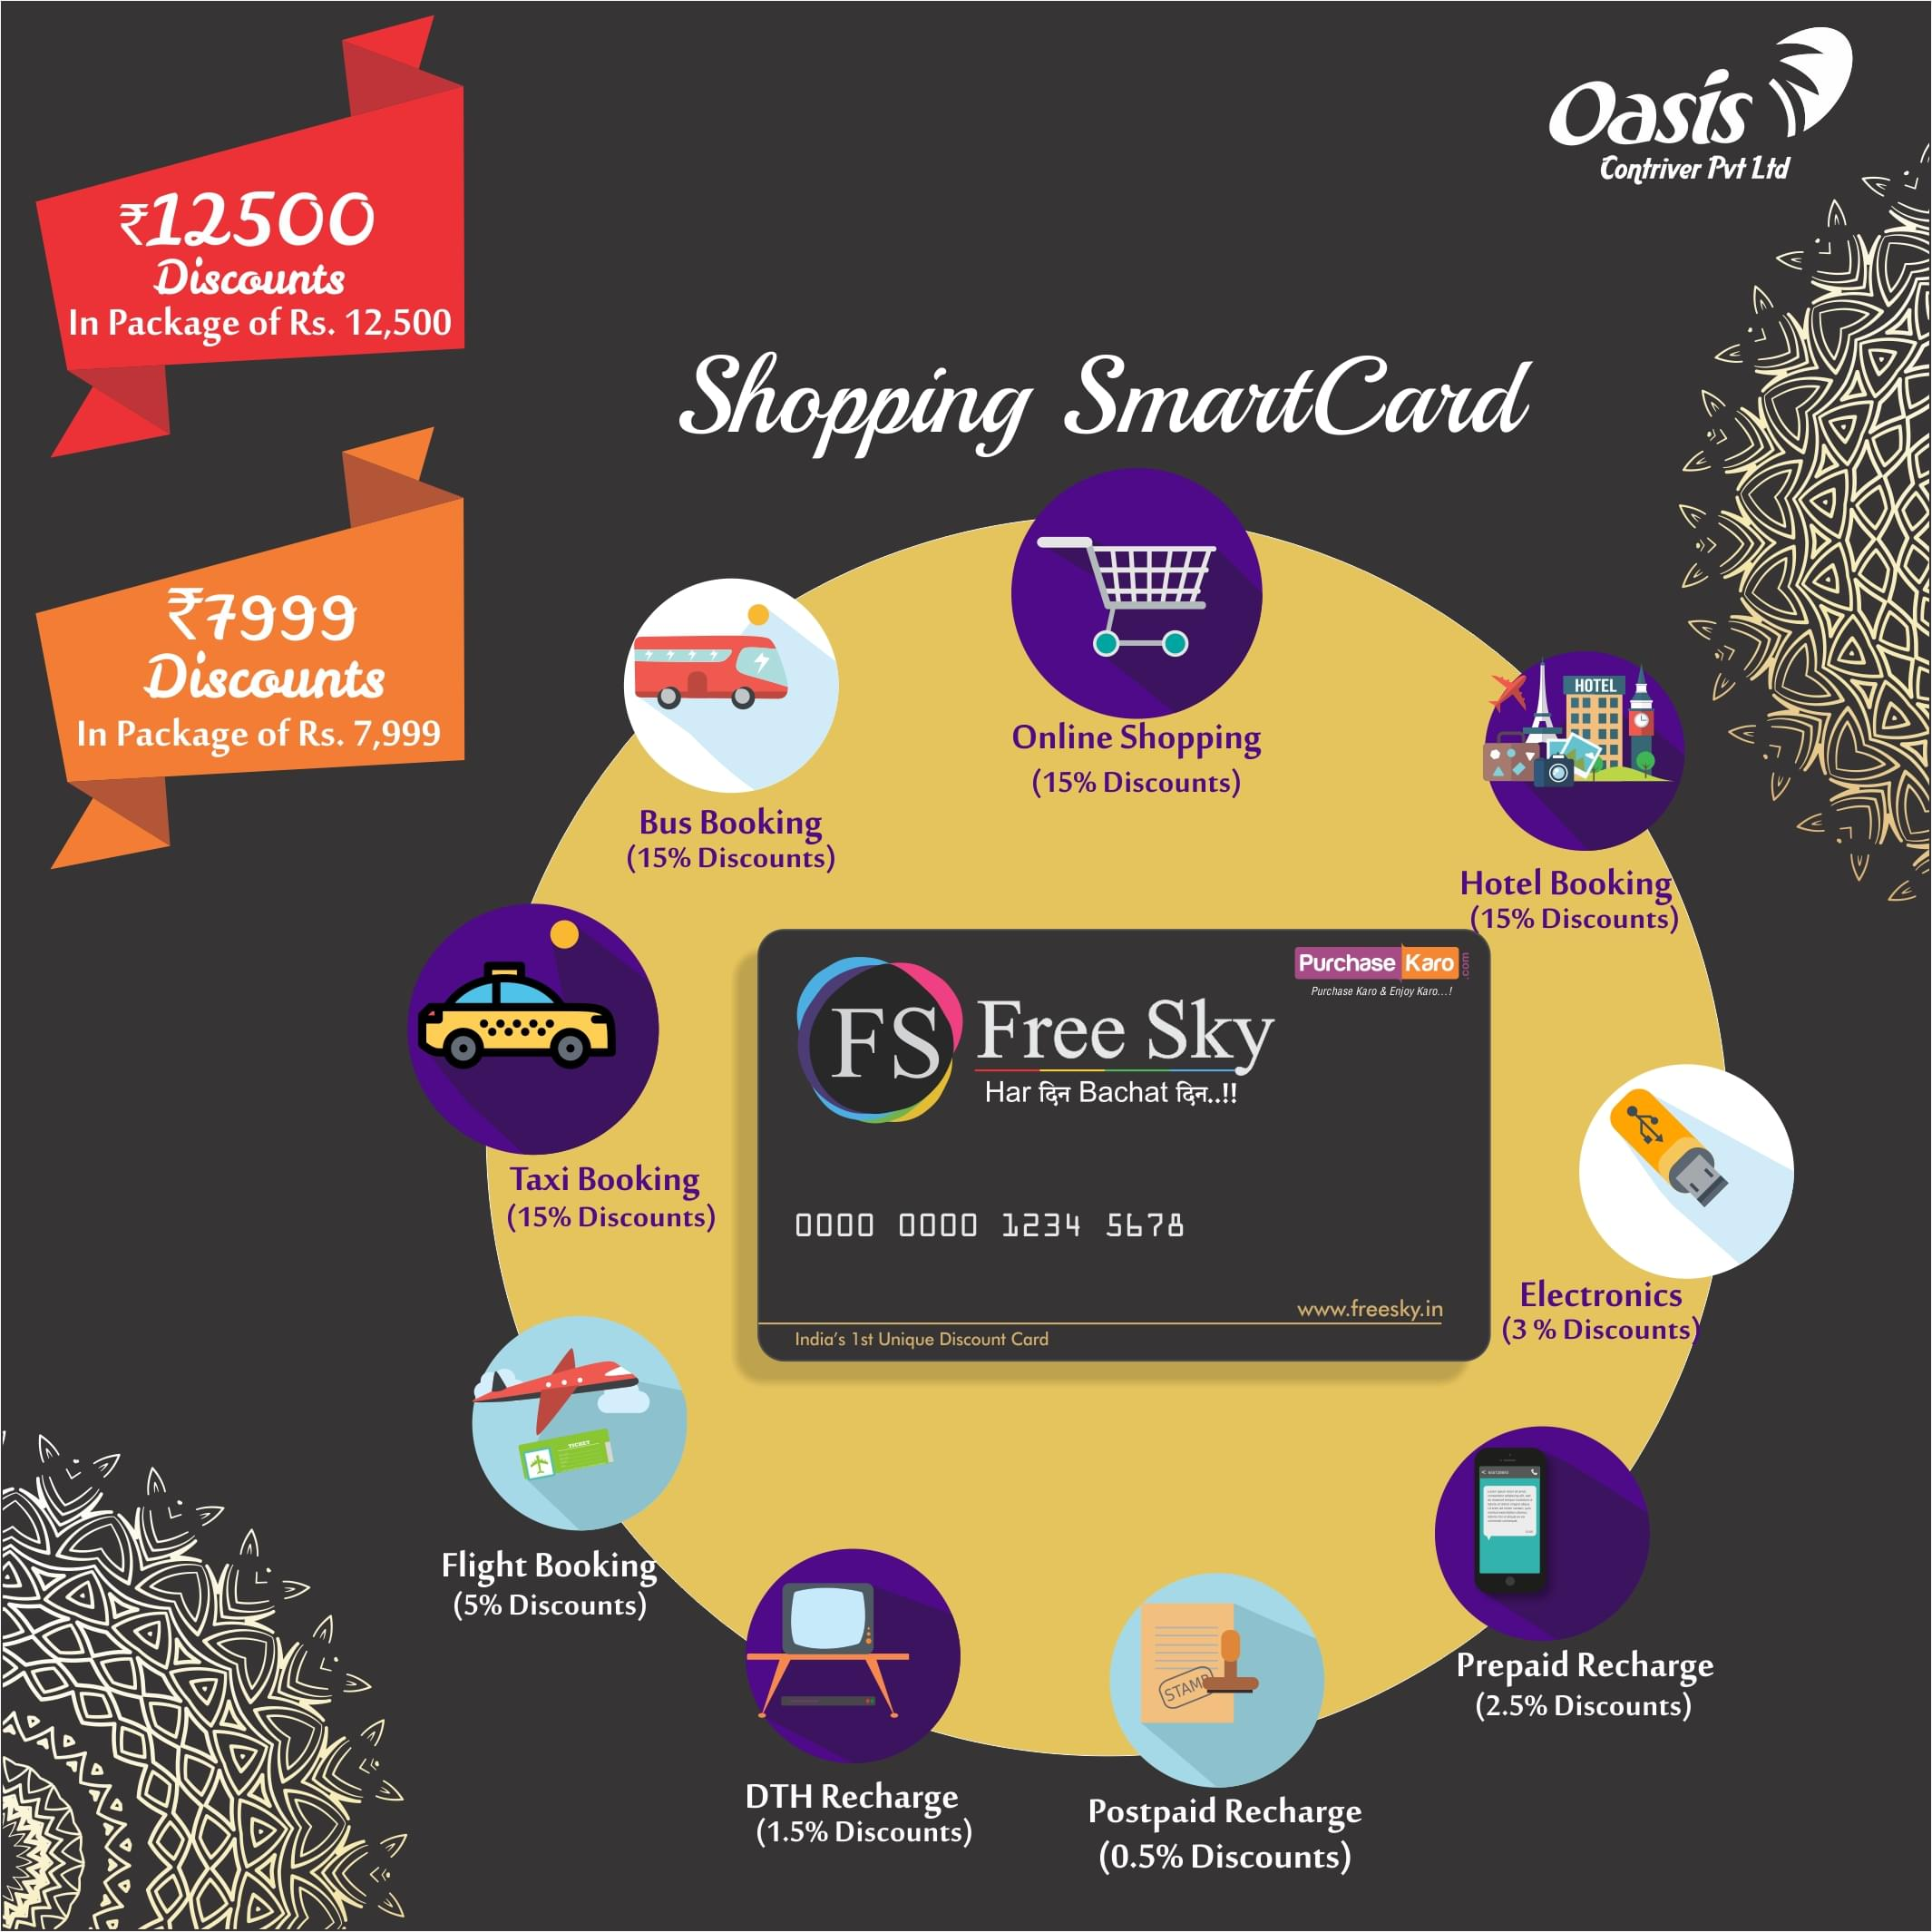 FreeSky Shopping Card